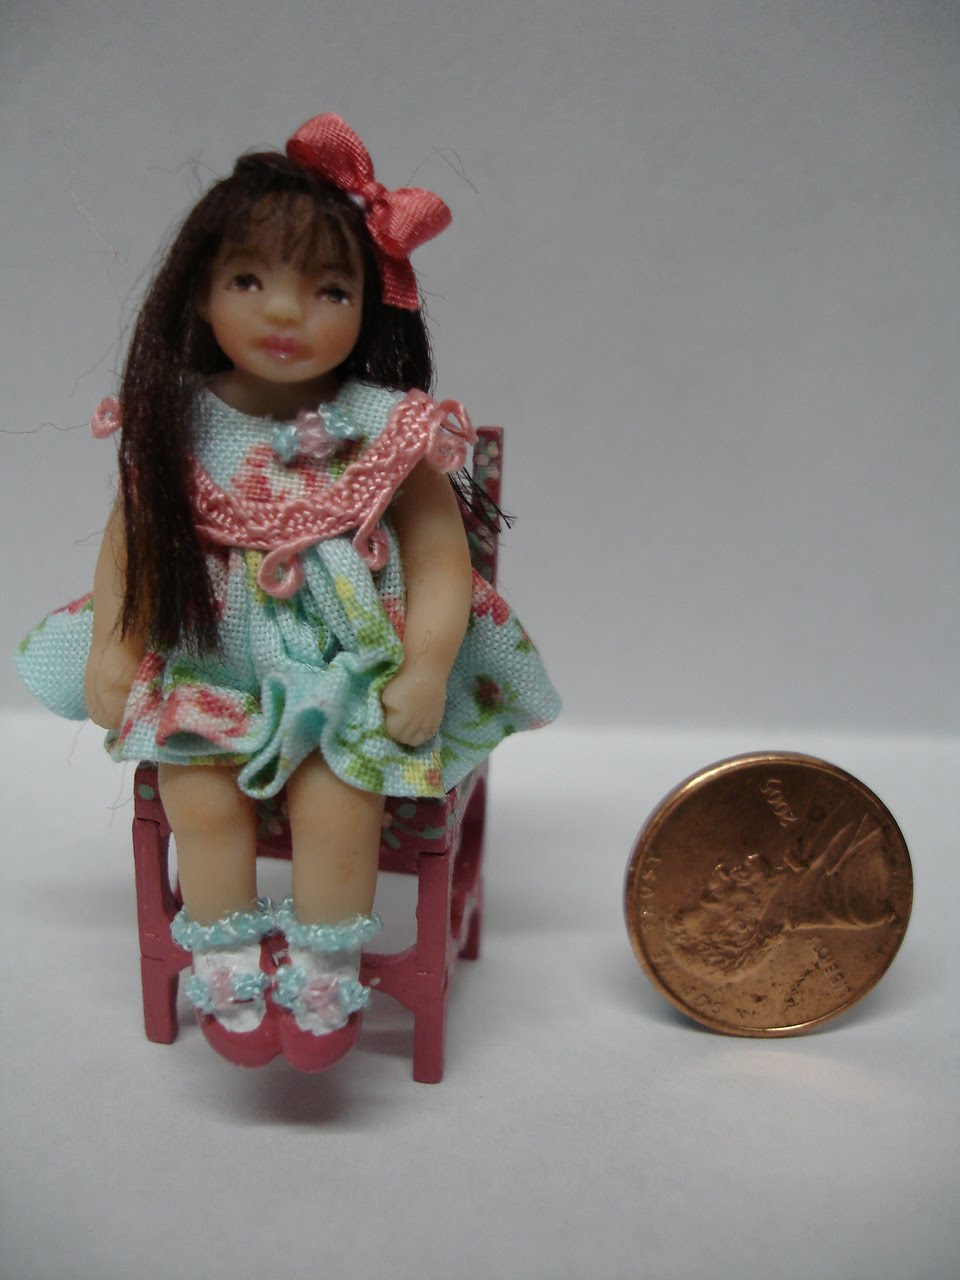 Miniature Dolls by Bonnie Justice: My Hand Sculpted Dolls